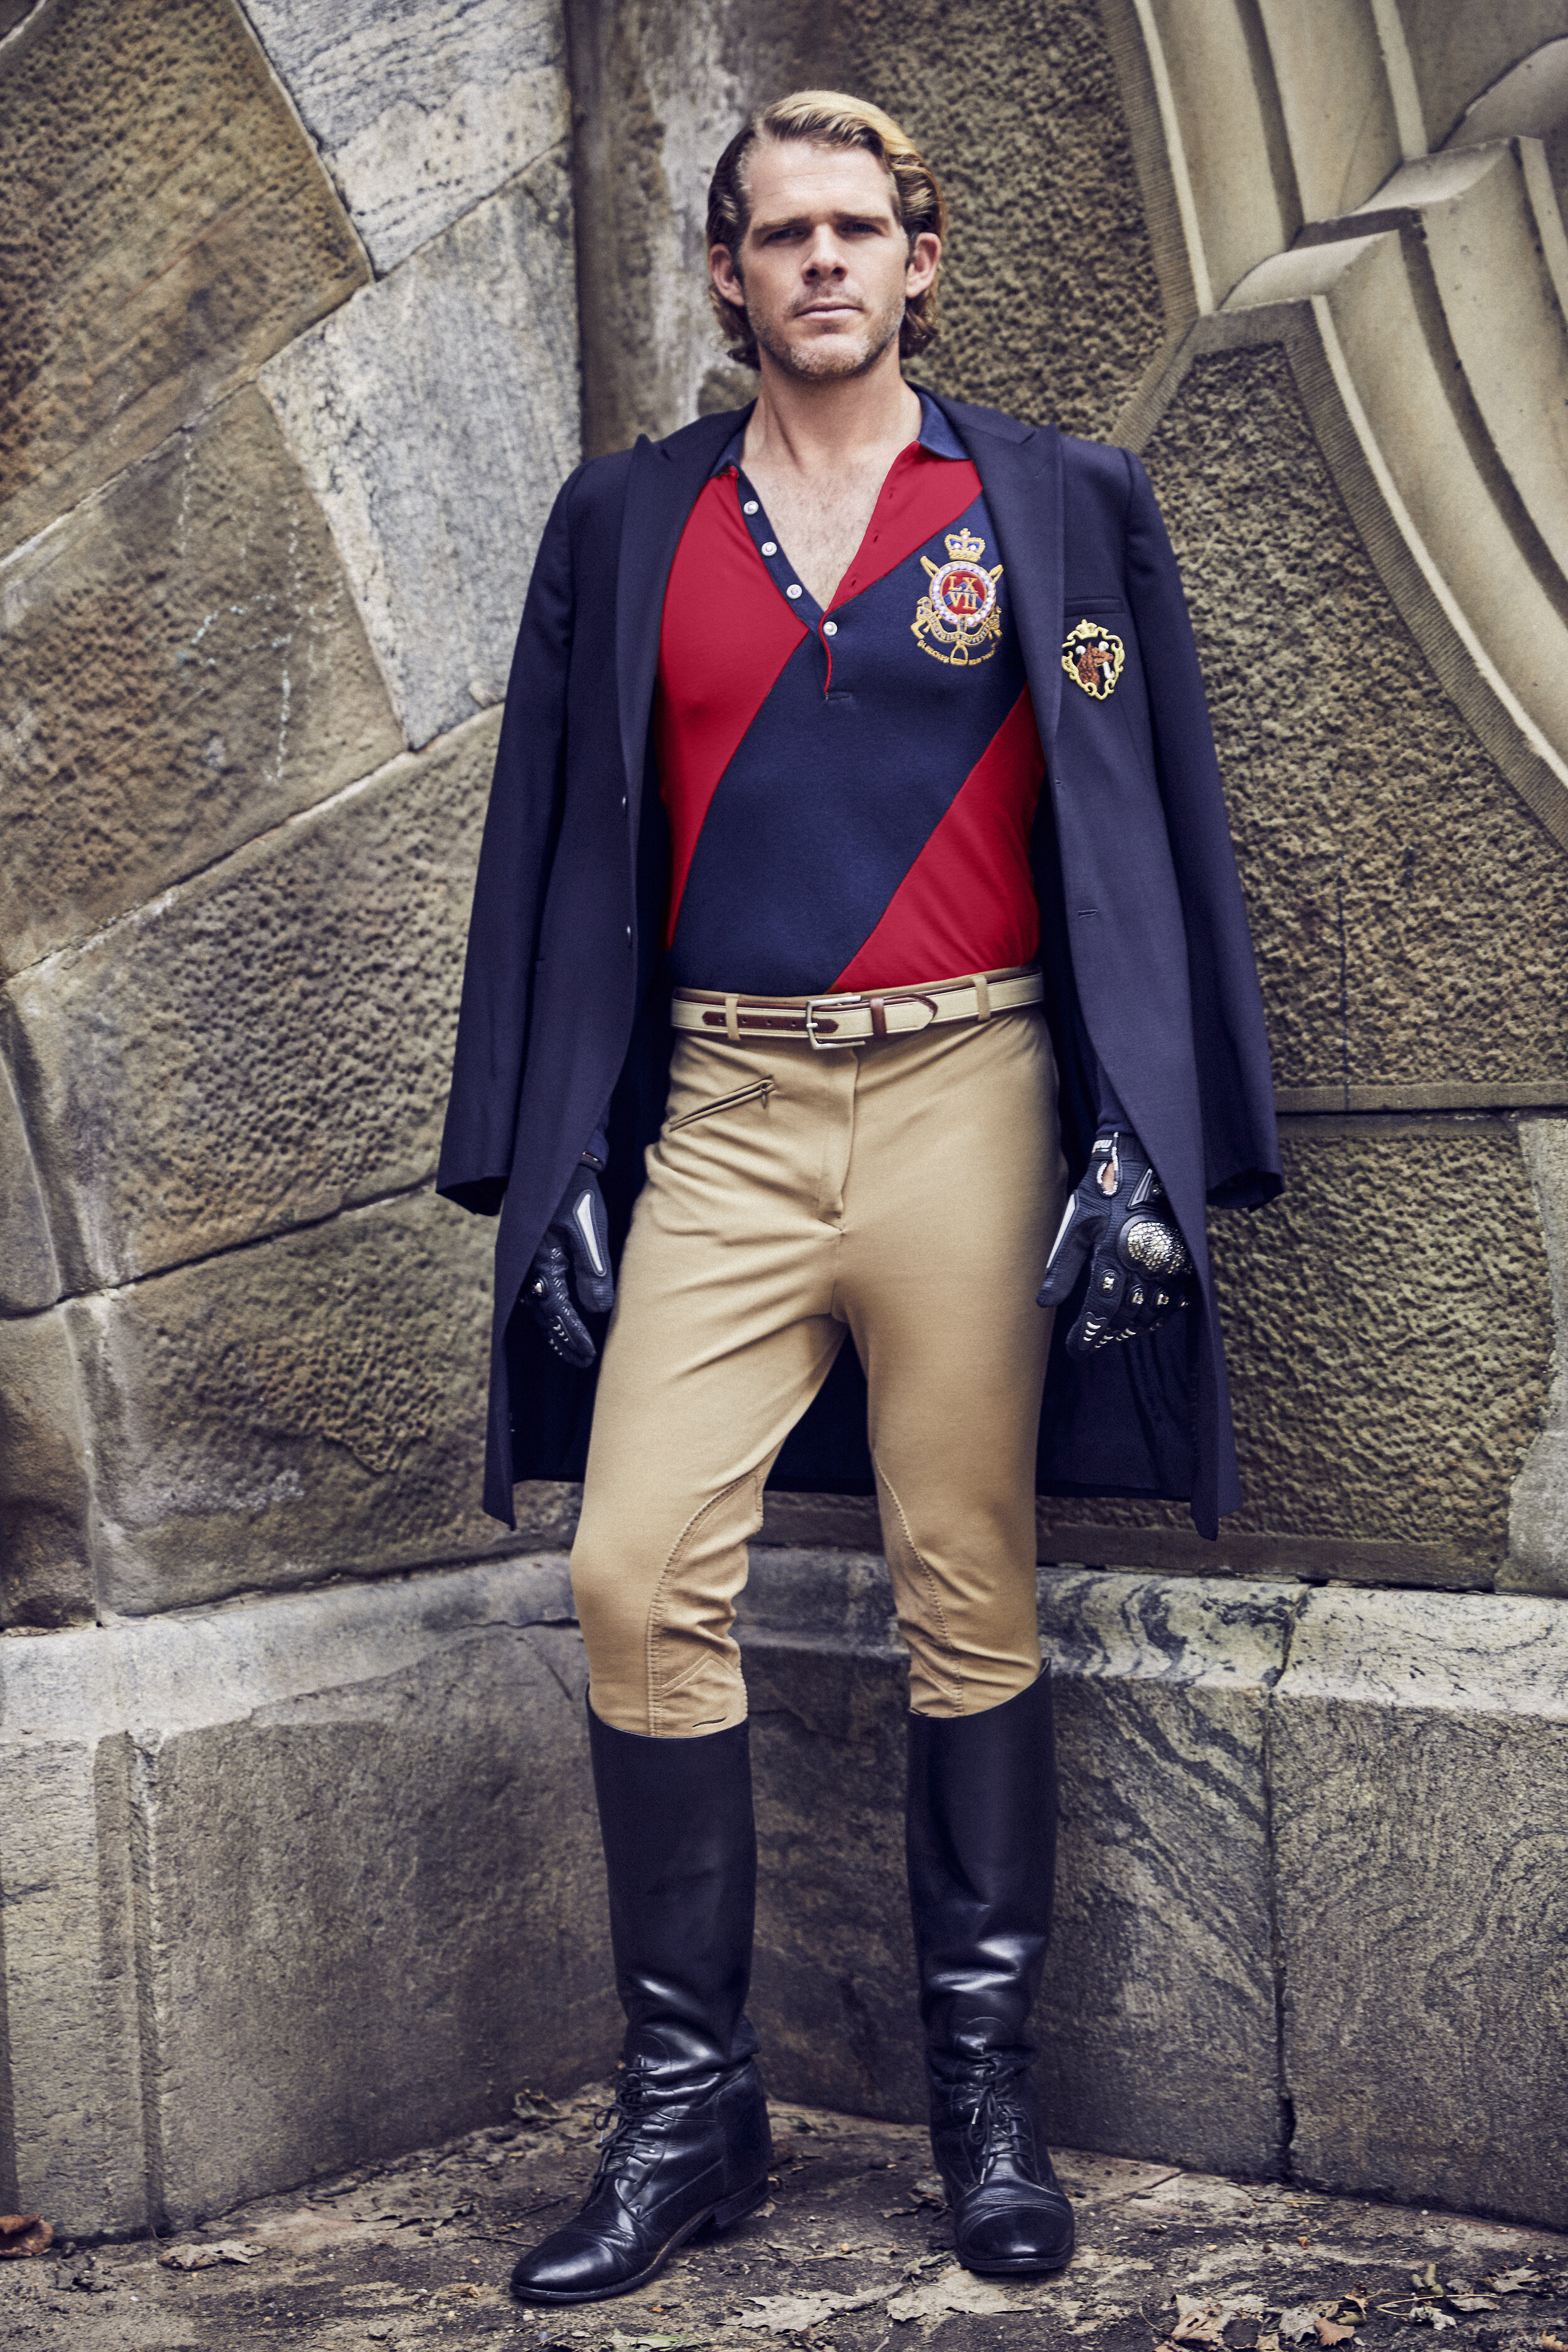 Navy Riding Jacket by  Emporio Armani , Navy and Red Shirt with Crest by Polo Vintage, Riding Pants, Belt by  Brooks Brothers